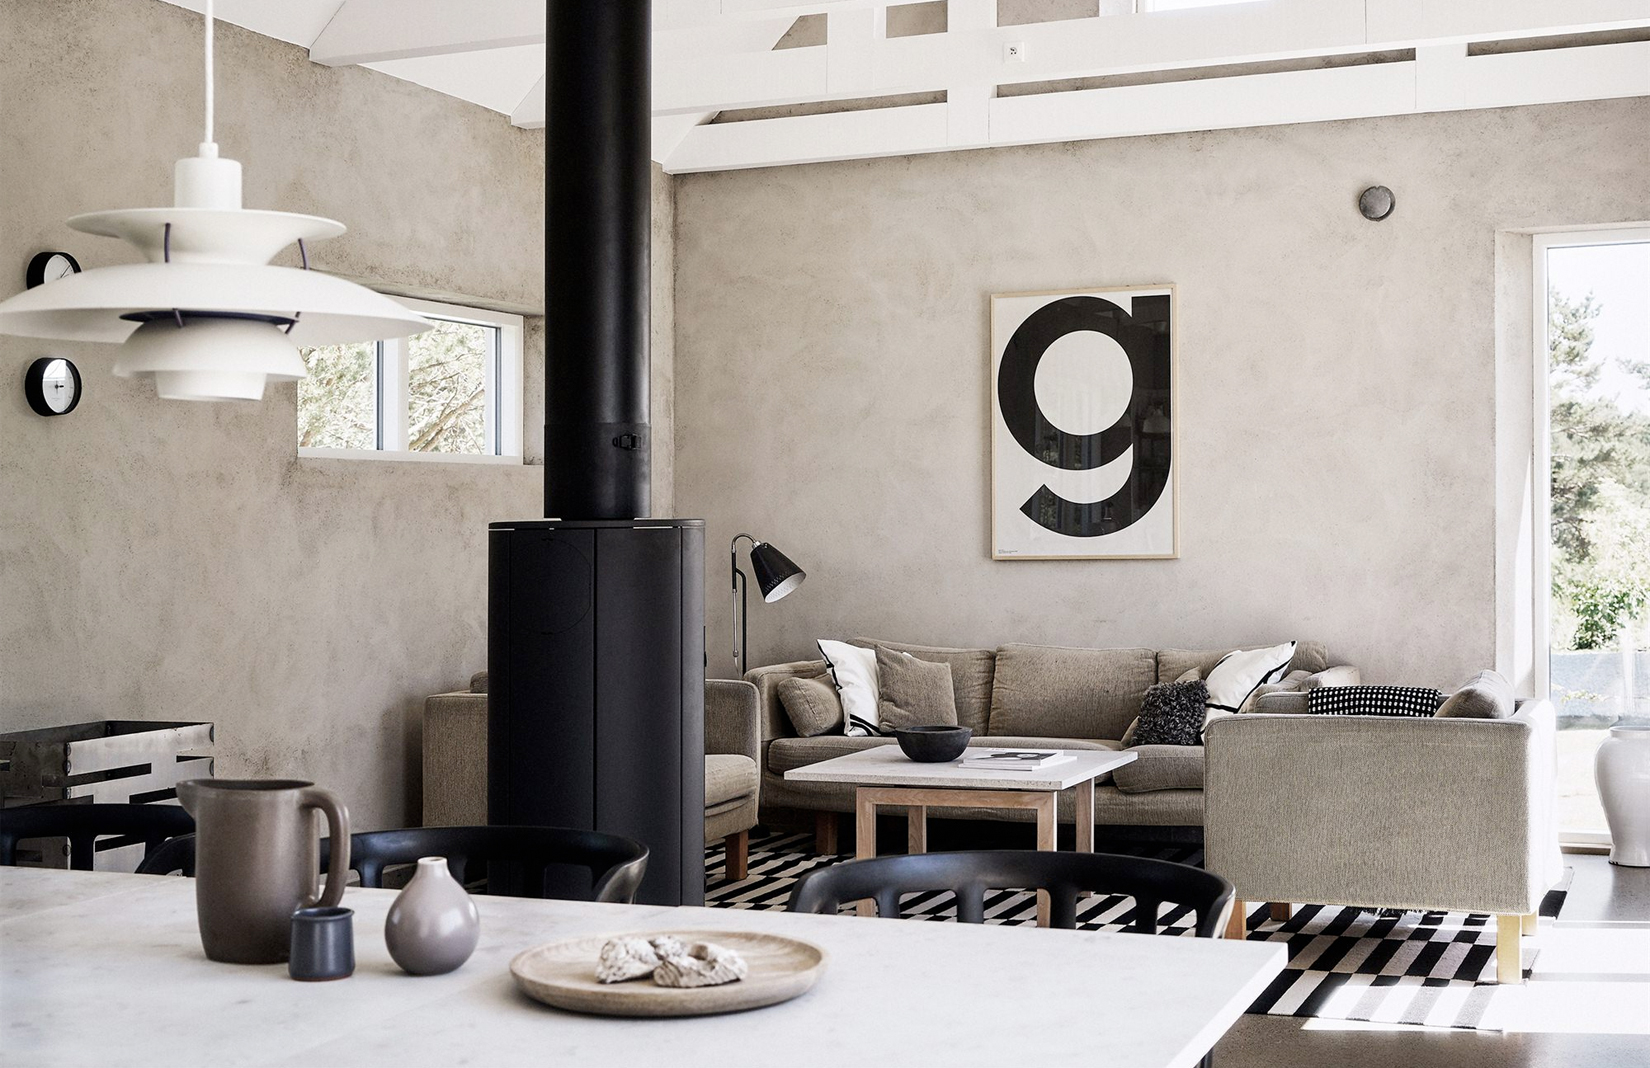 6 Swedish Estate Agents You Should Know